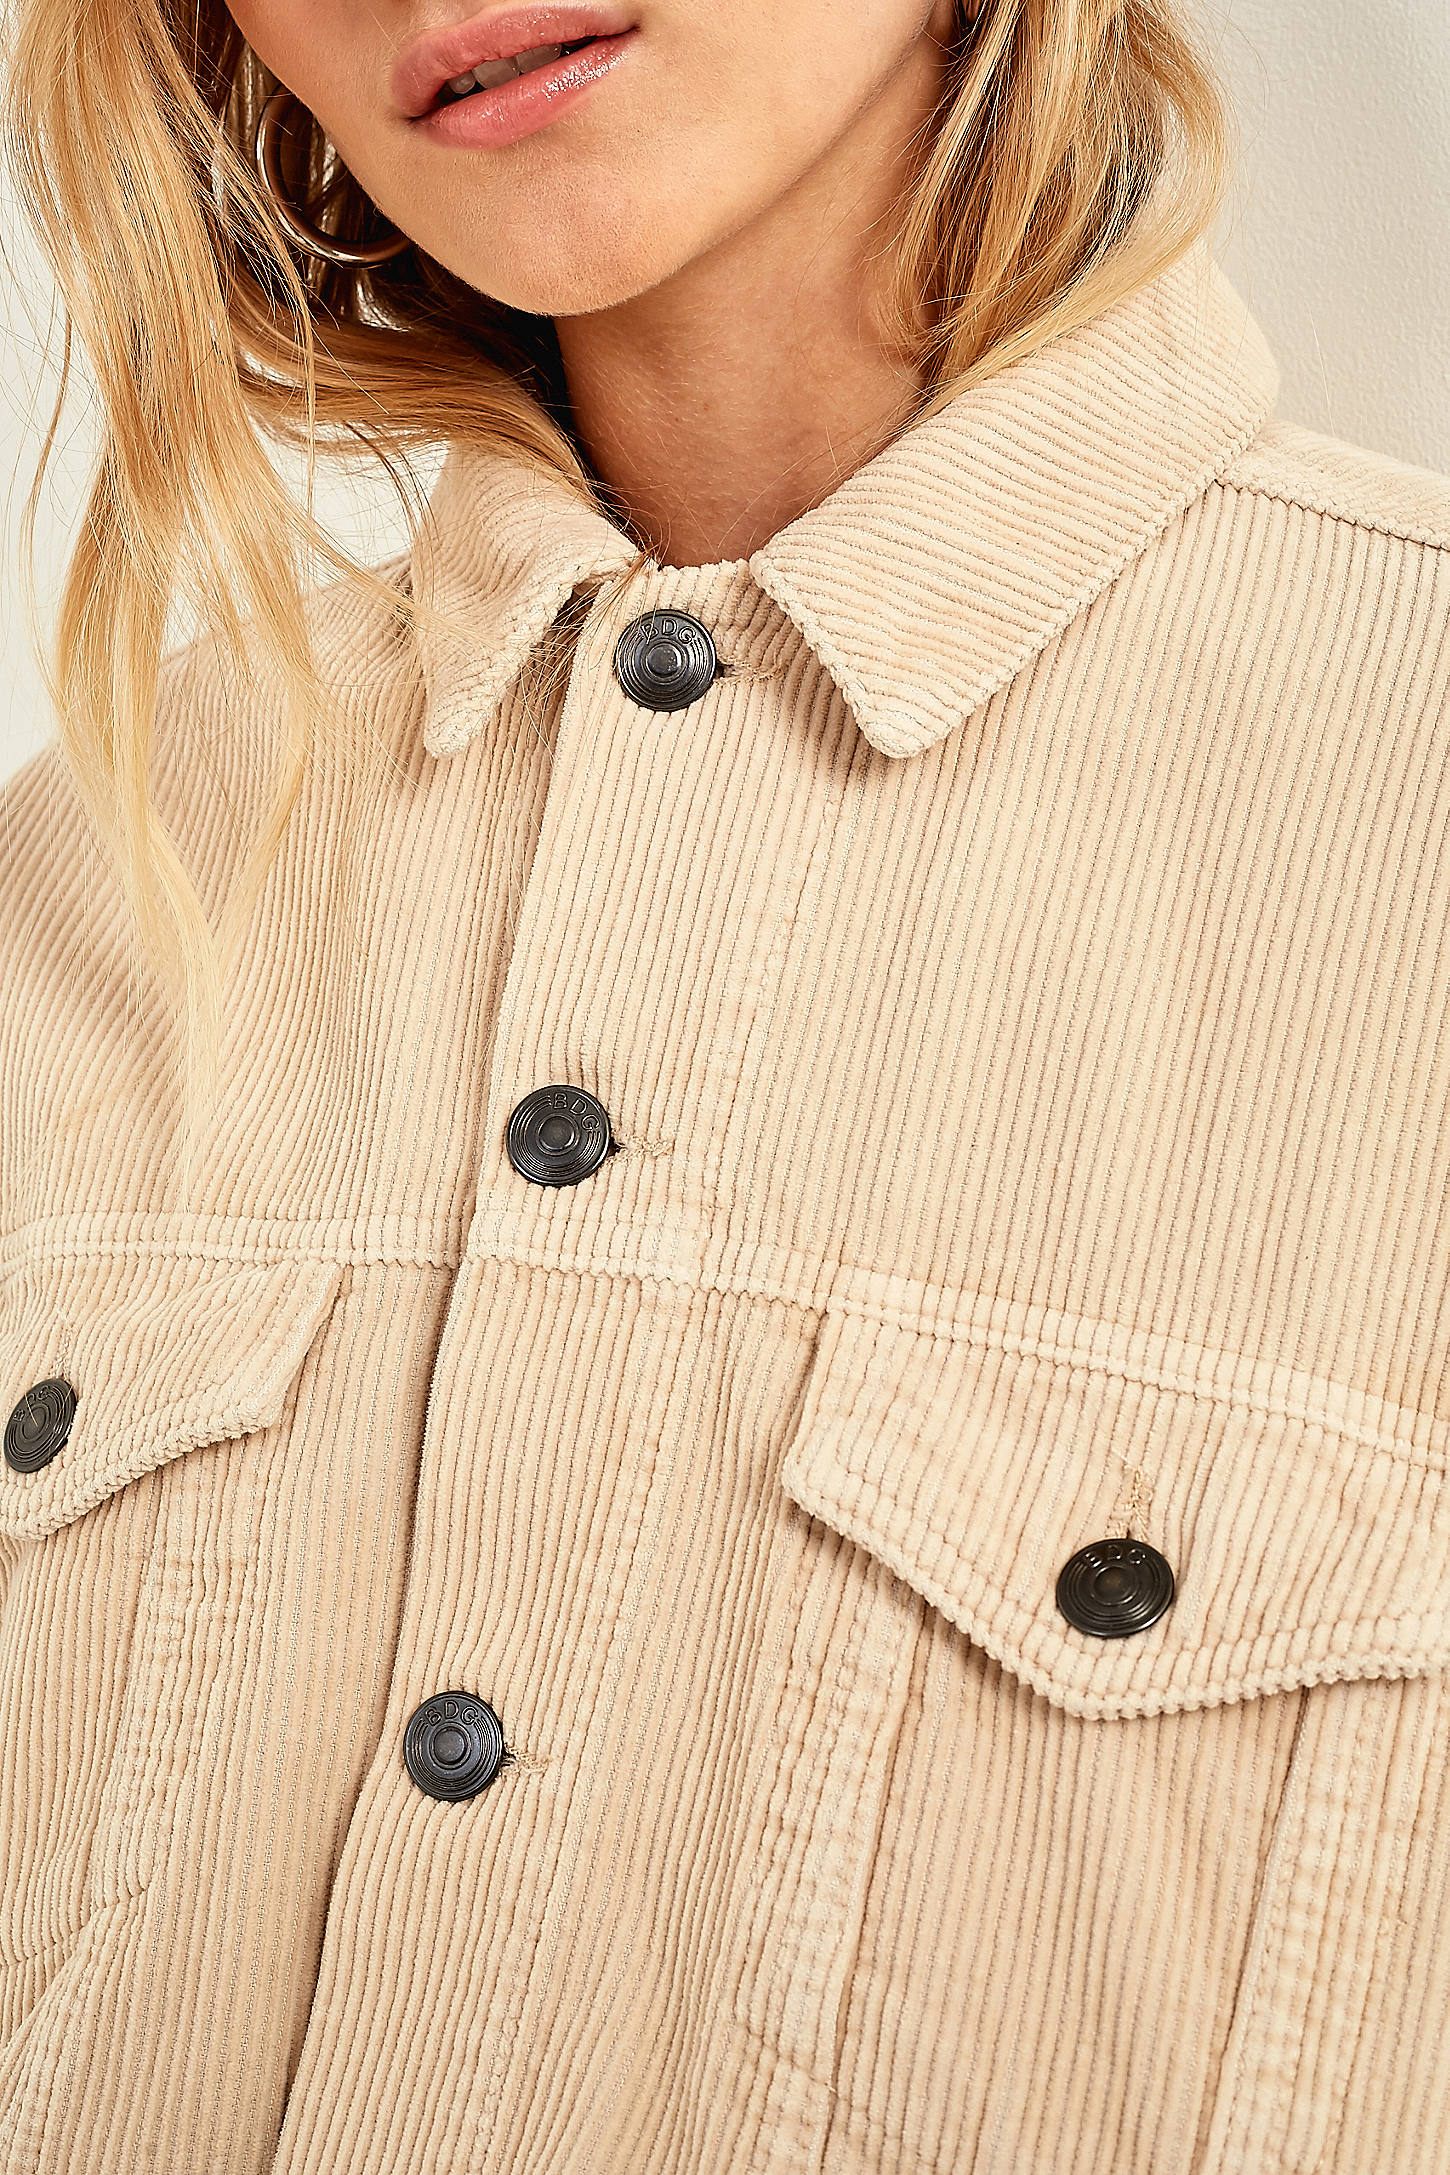 bdg cream corduroy jacket urban outfitters